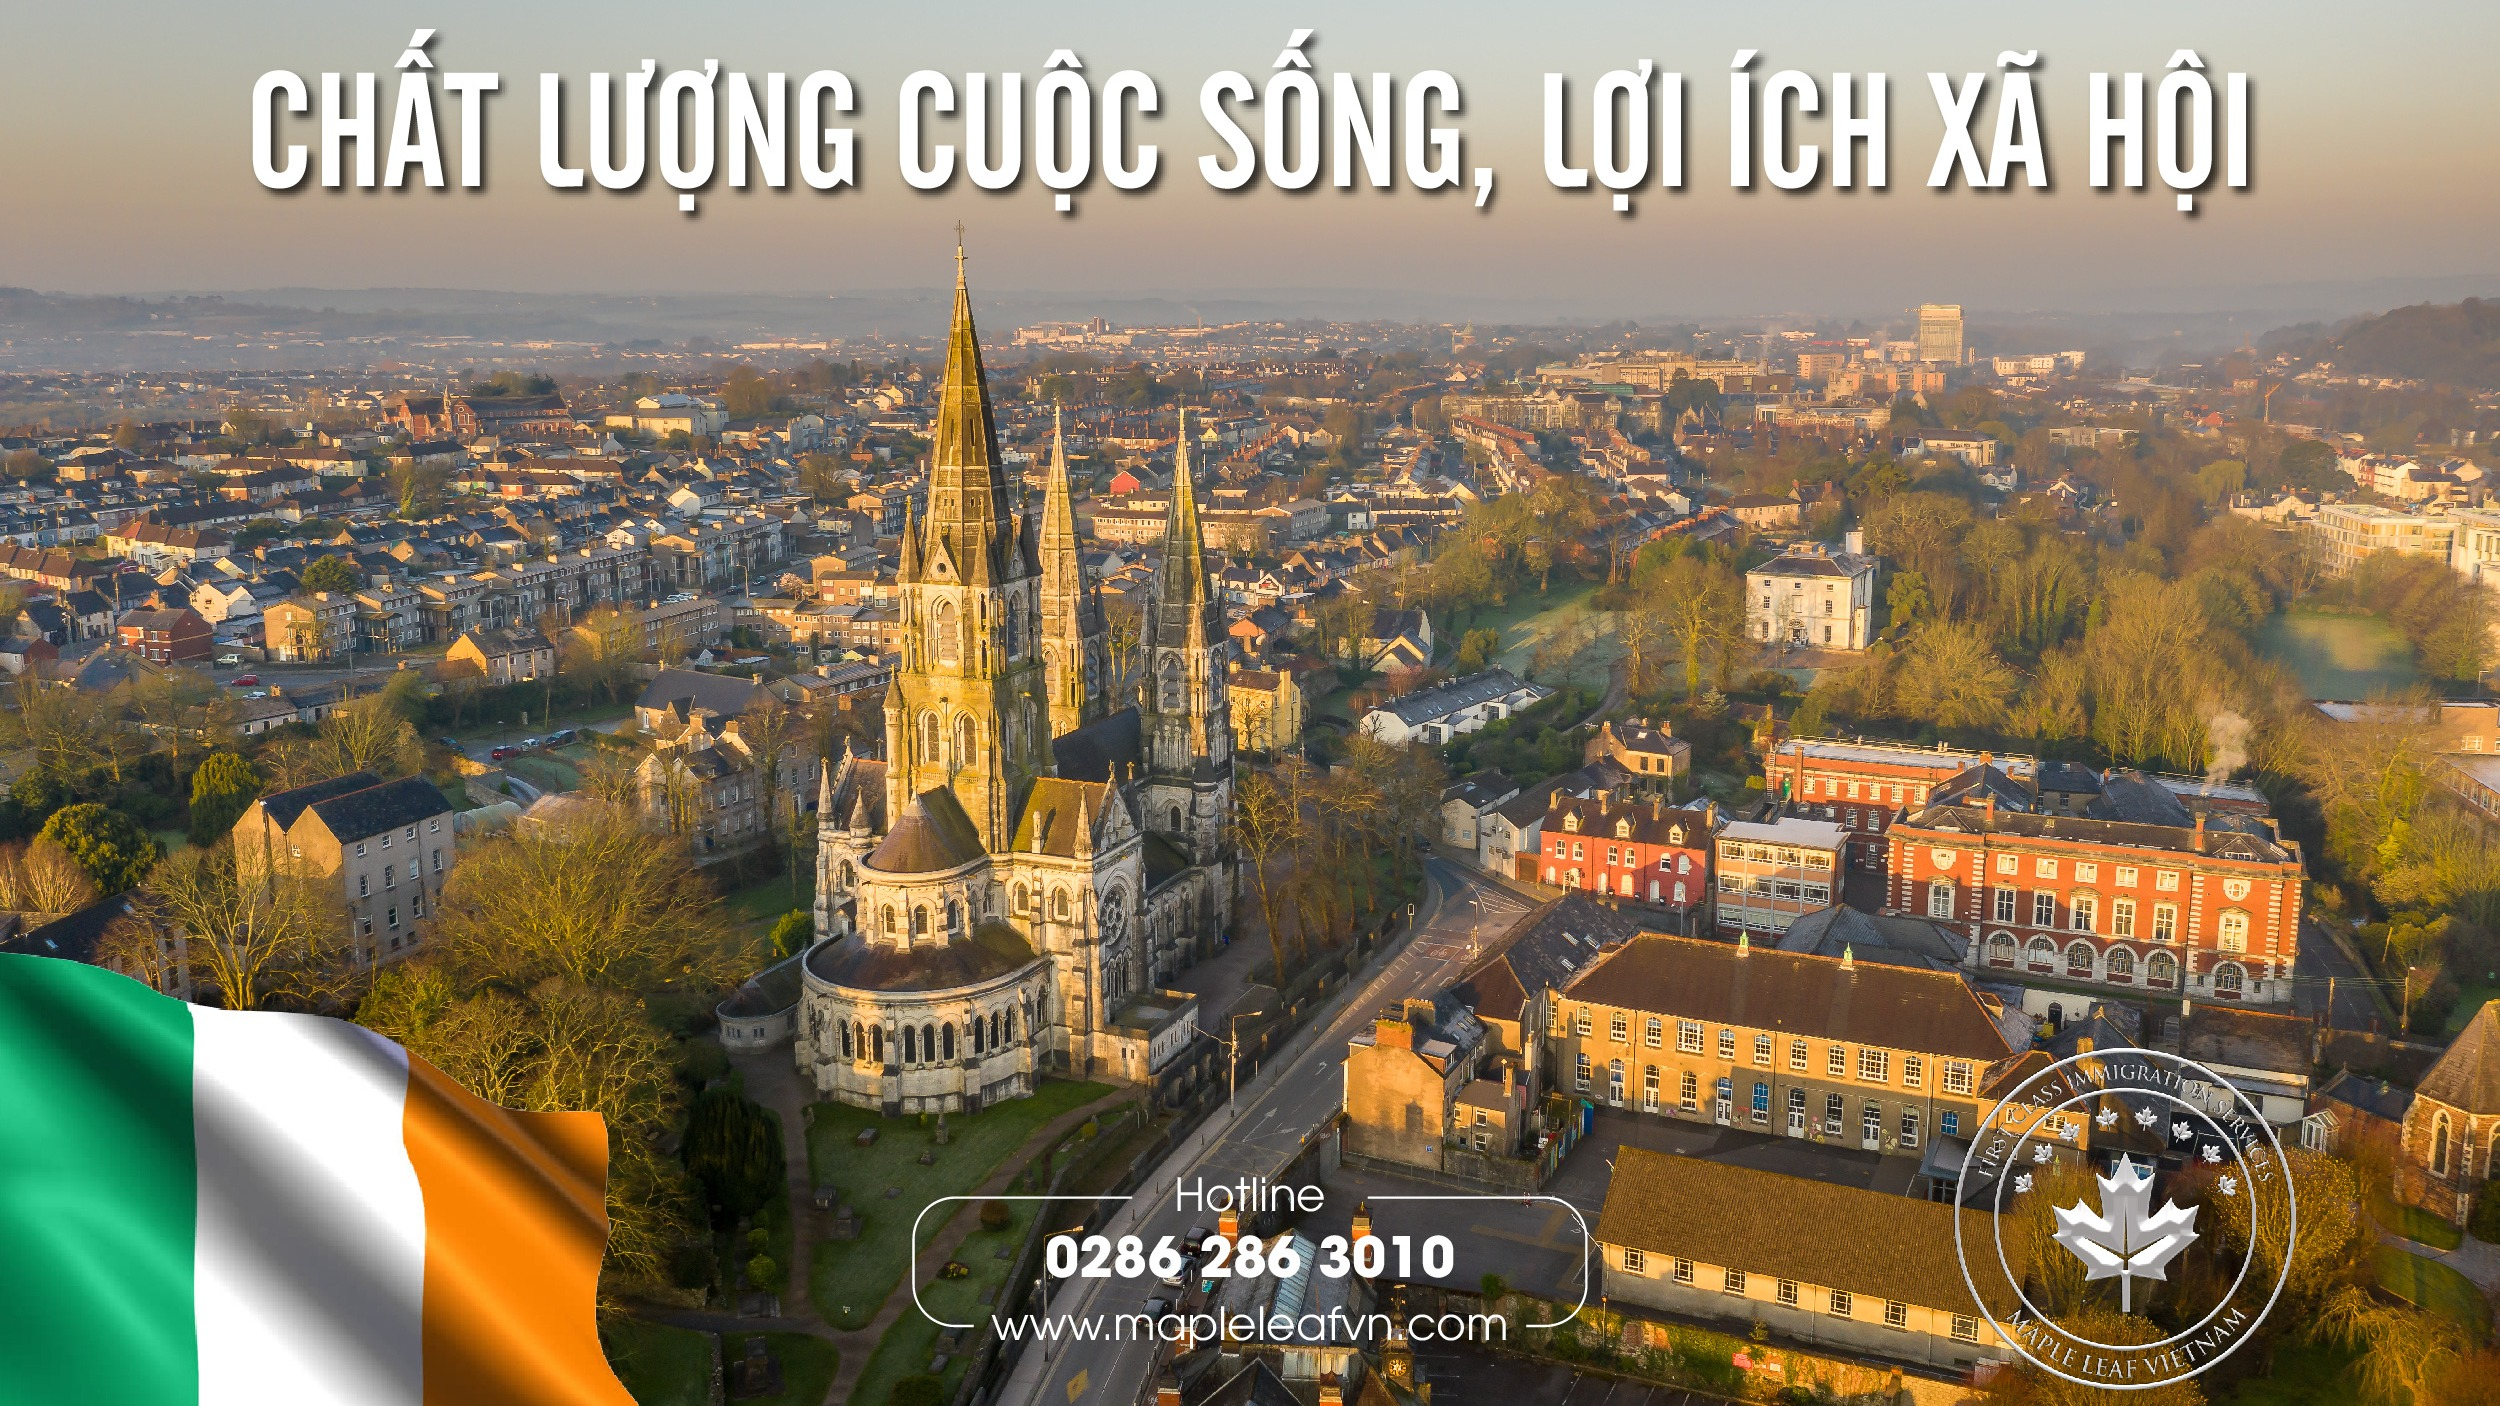 chat-luong-cuoc-song-loi-ich-xa-hoi